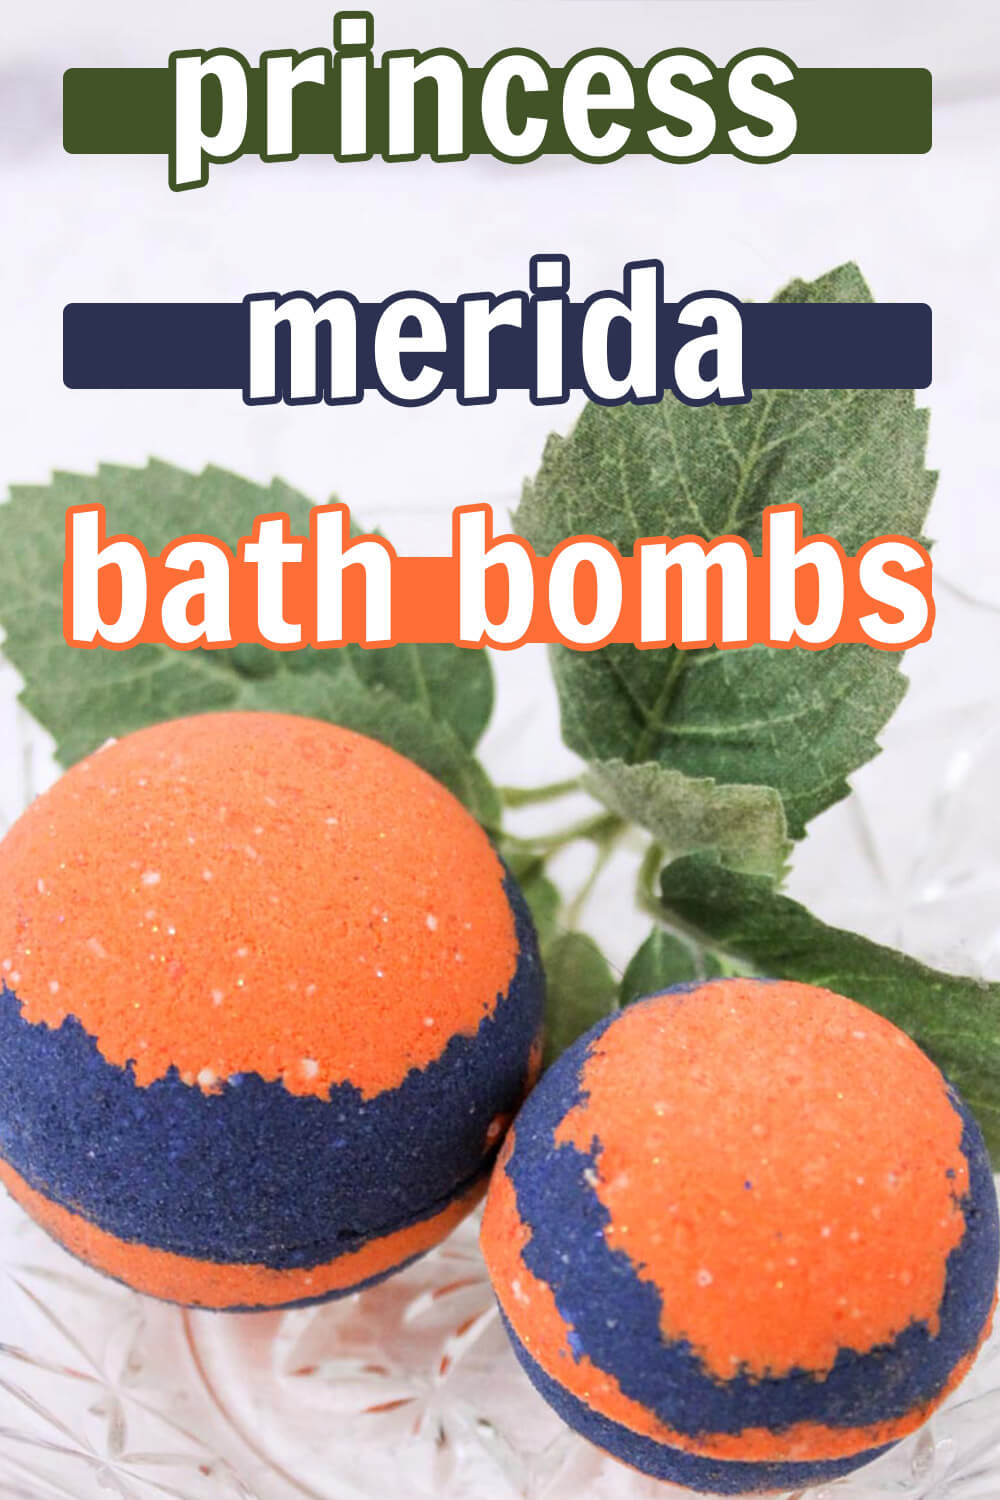 two orange and blue bath bombs on a white table with green leaves in the background with text which reads princess merida bath bombs